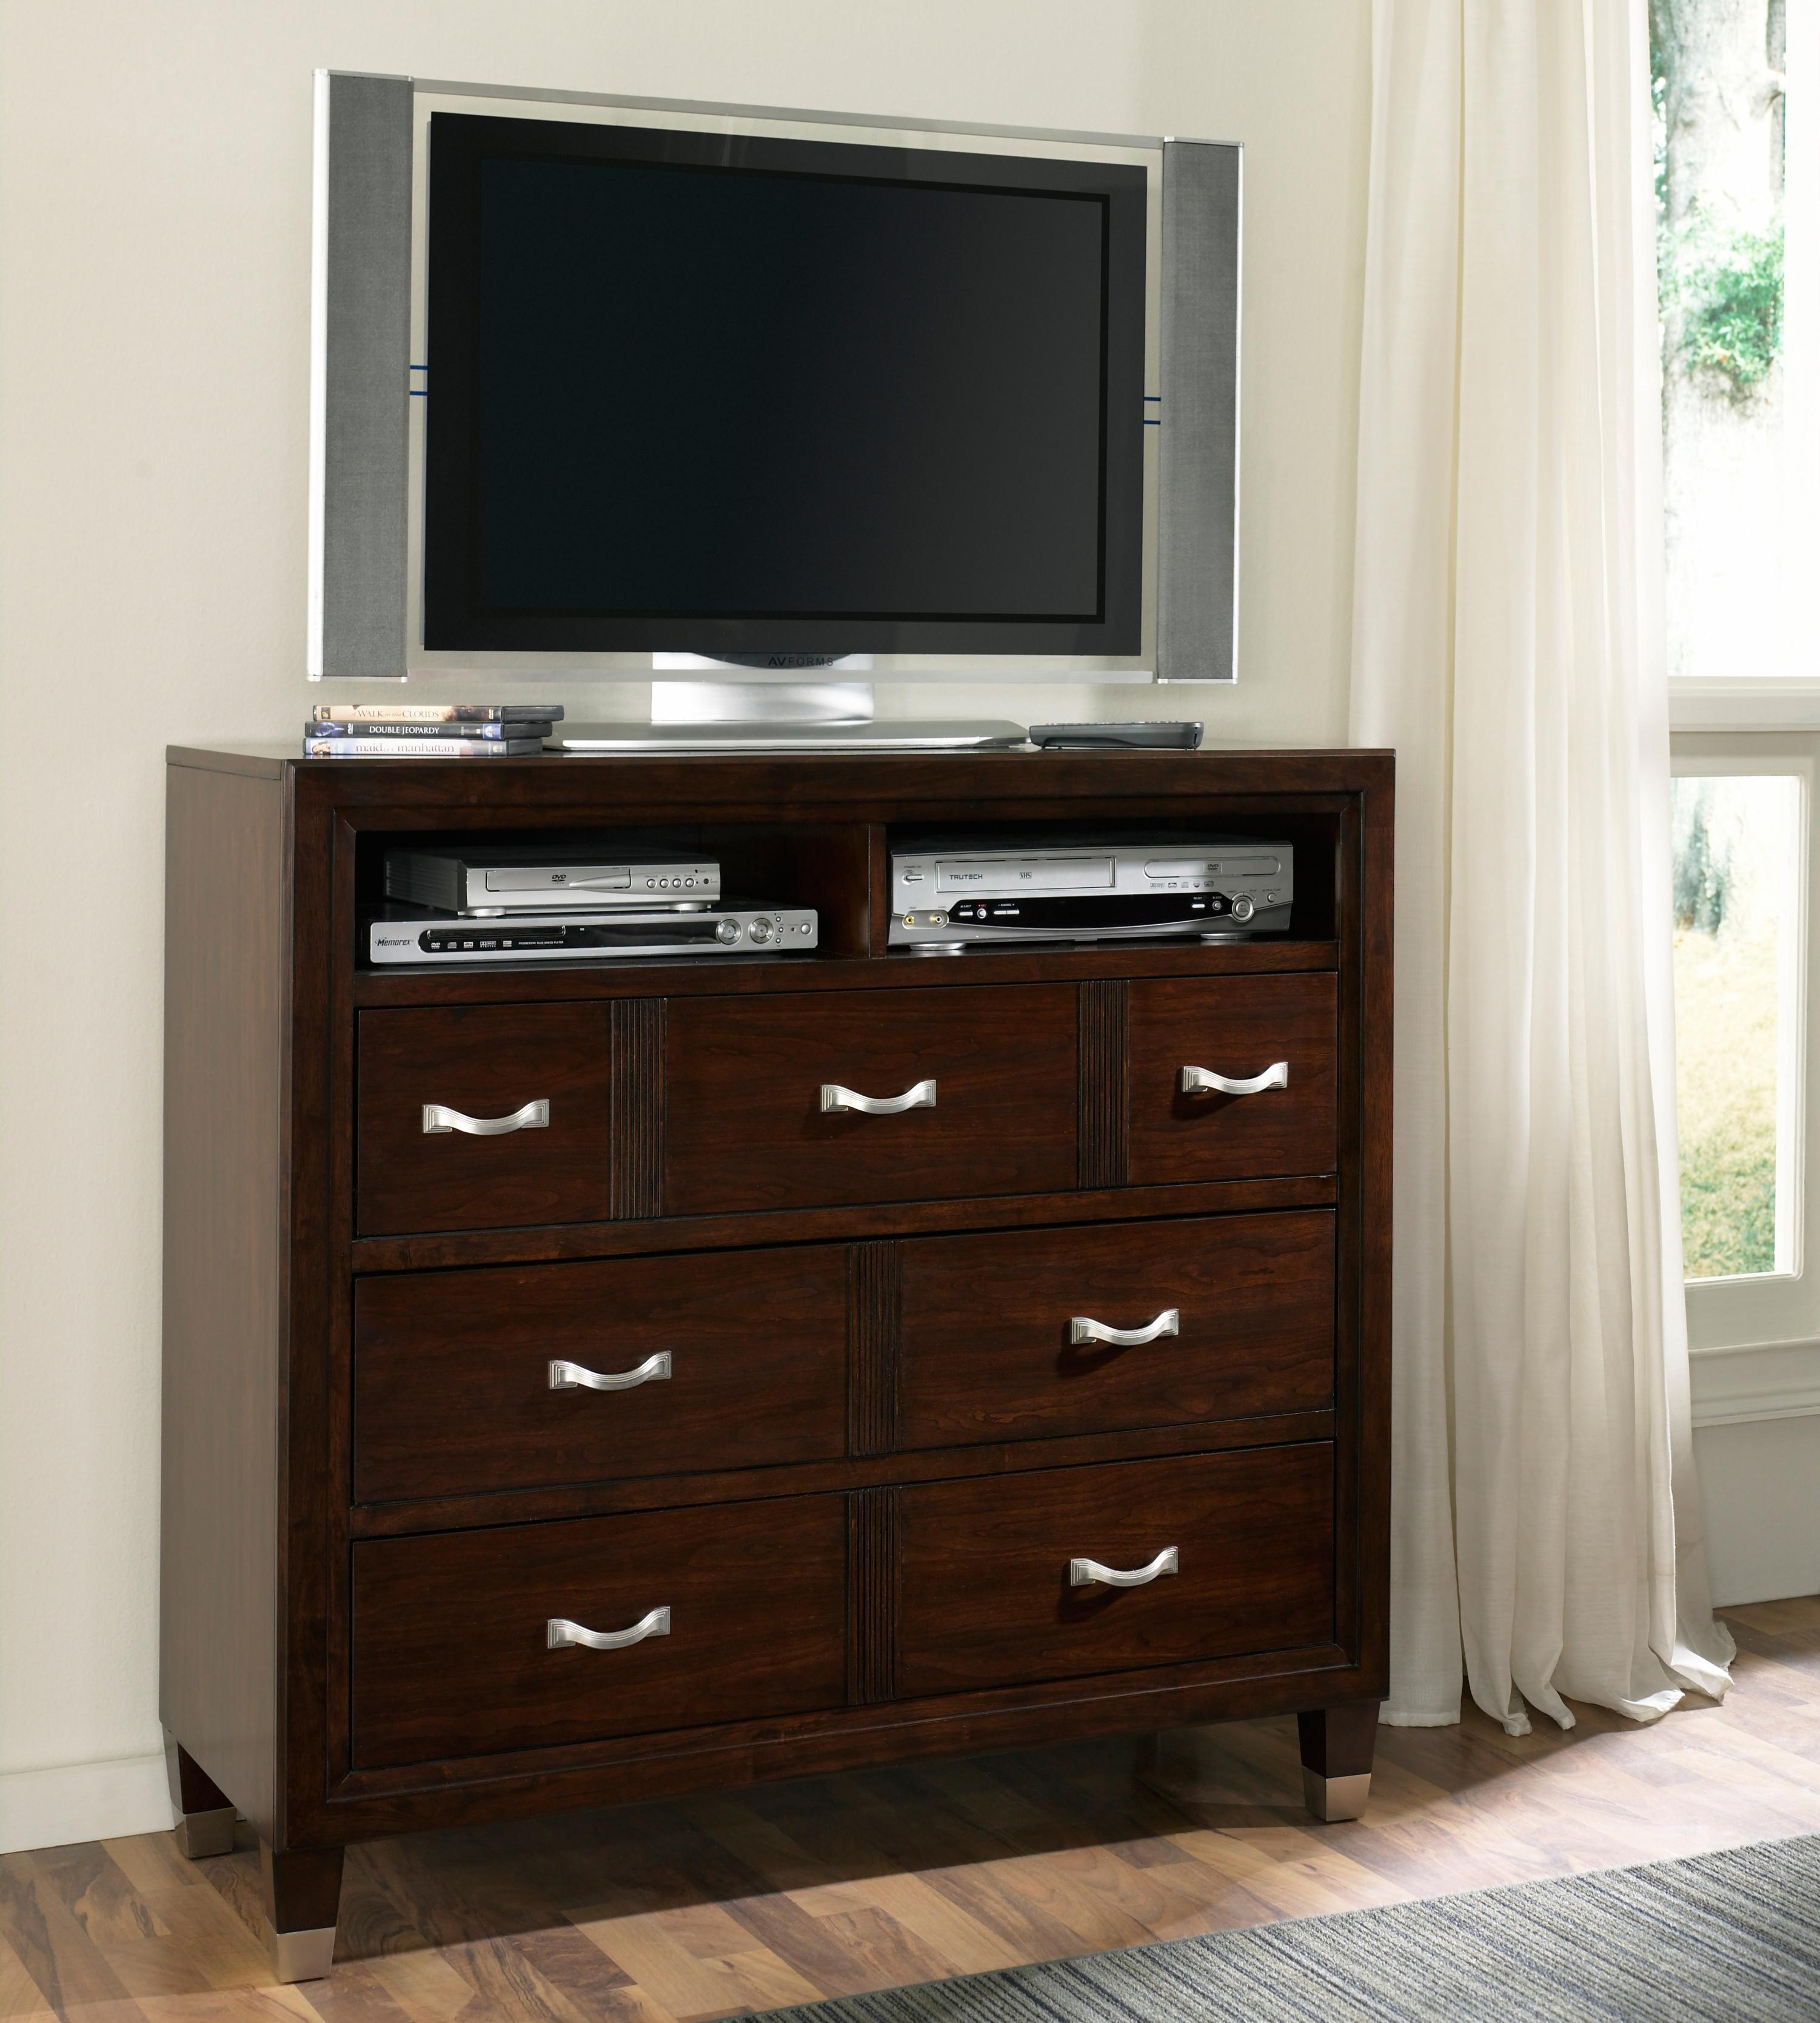 Broyhill Furniture Eastlake 2 Media Chest - Item Number: 4264-225